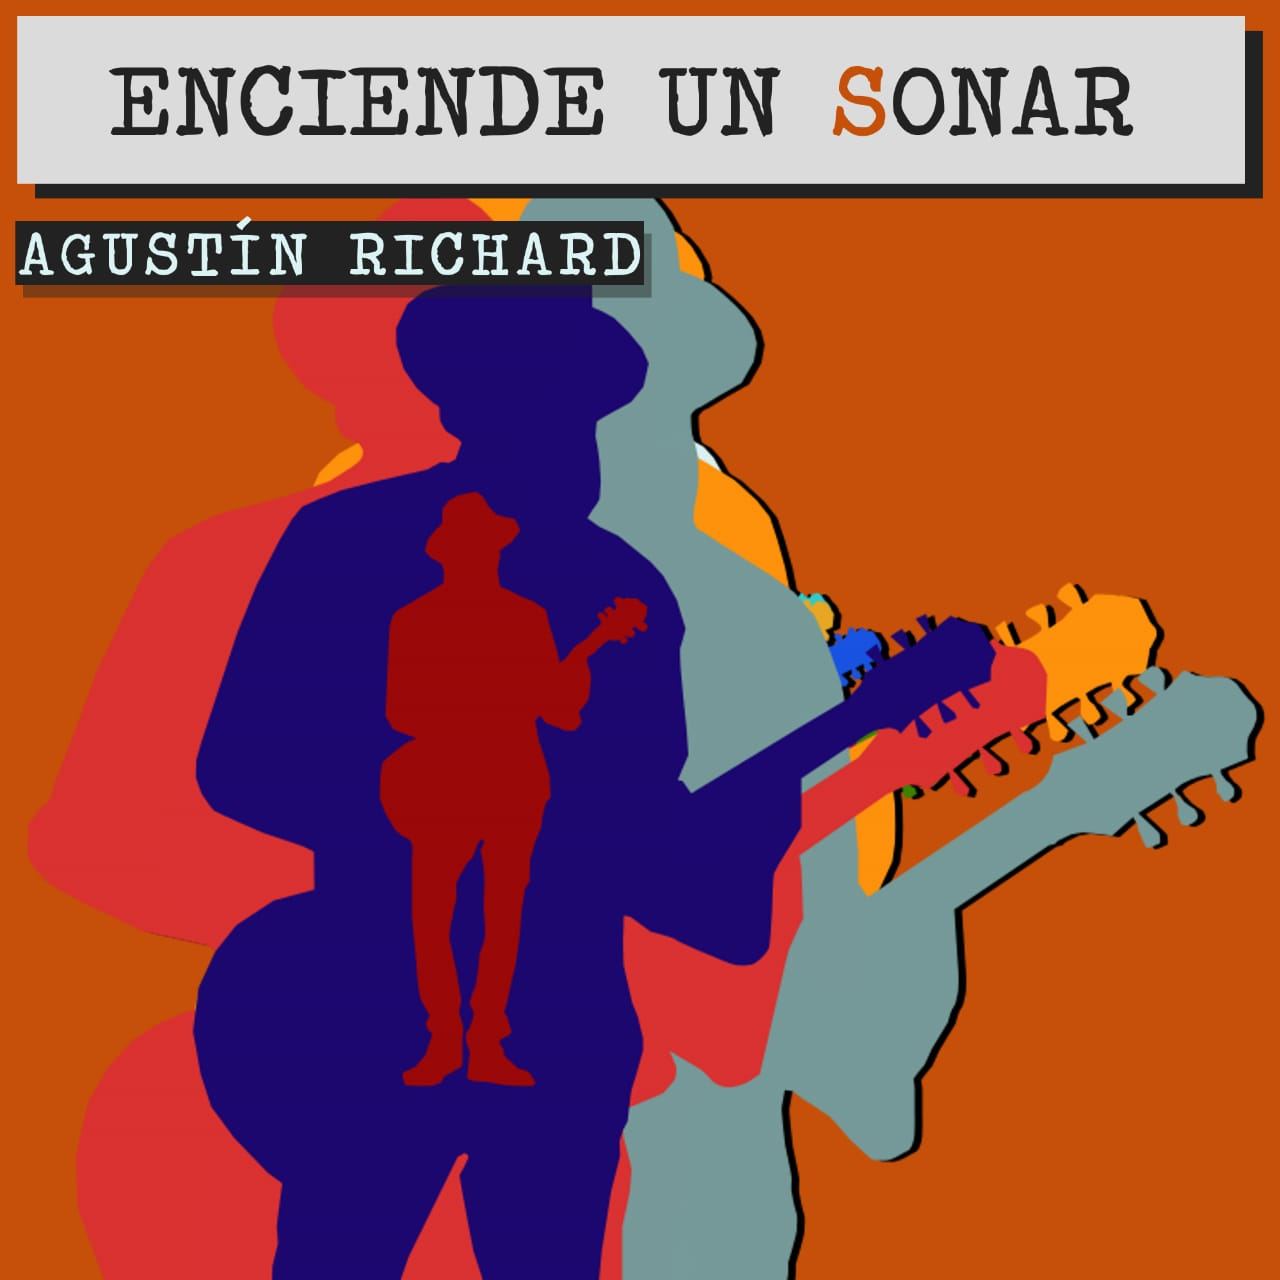 Agustin Richard - Enciende Un Sonar